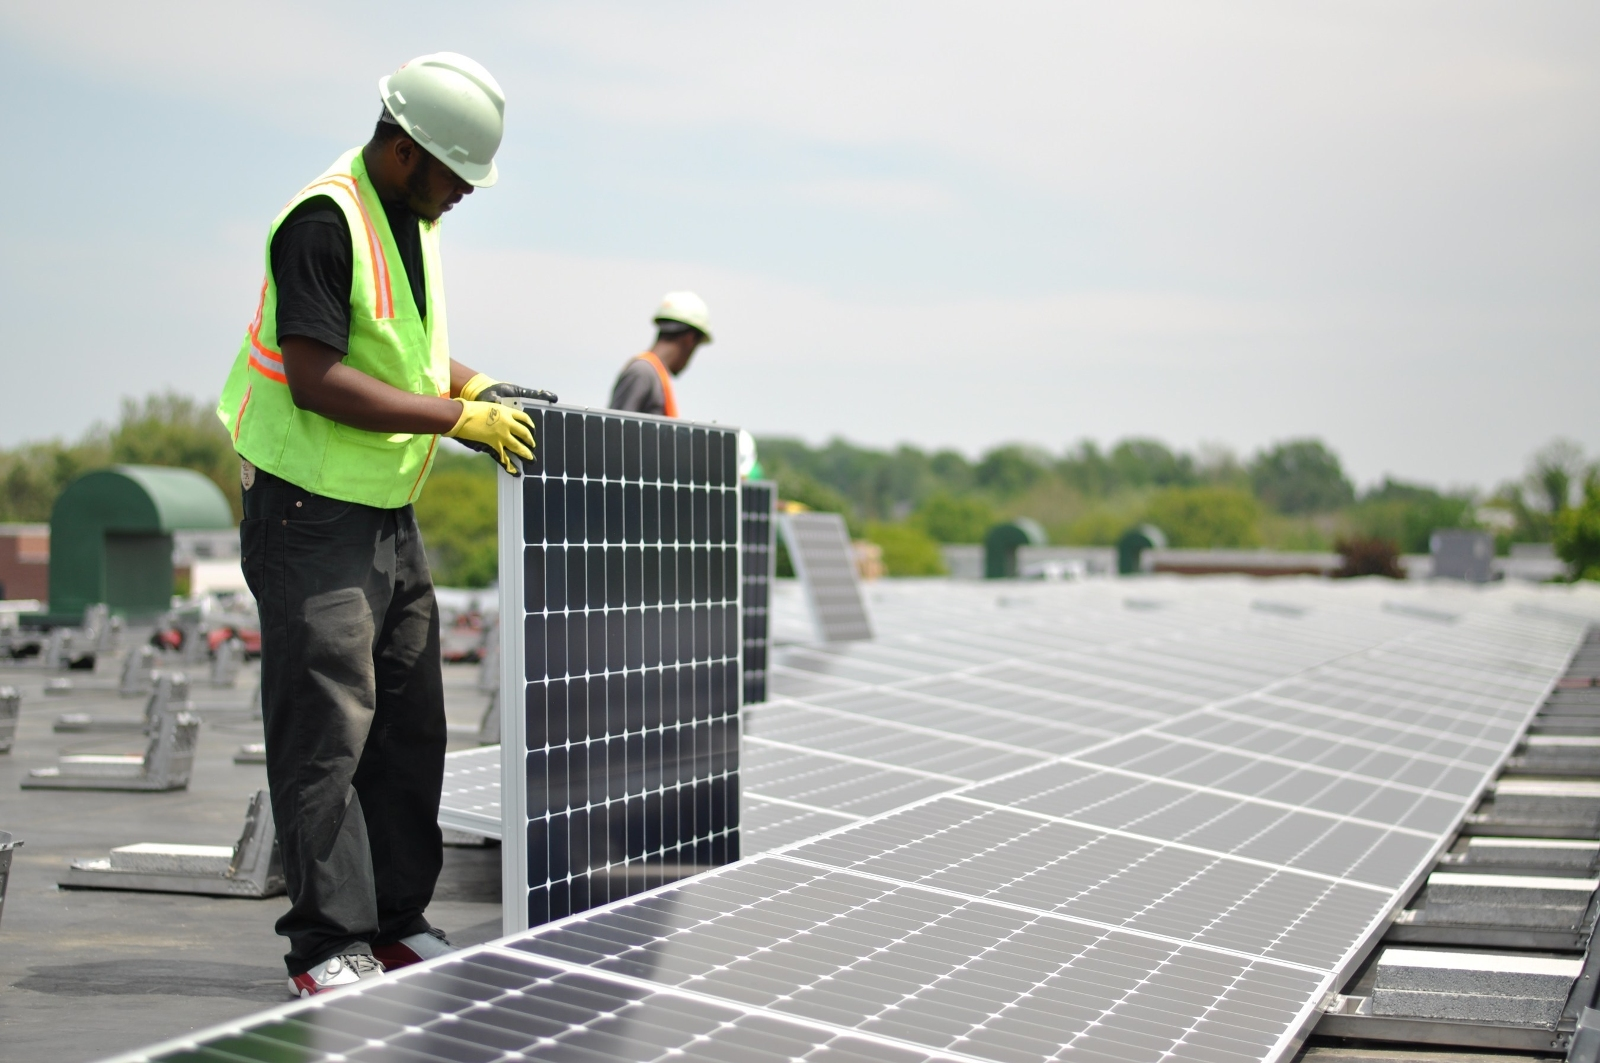 SunPower has raised its guidance for 2020 as the US solar market continues to rebound strongly from the pandemic. Image: SunPower.